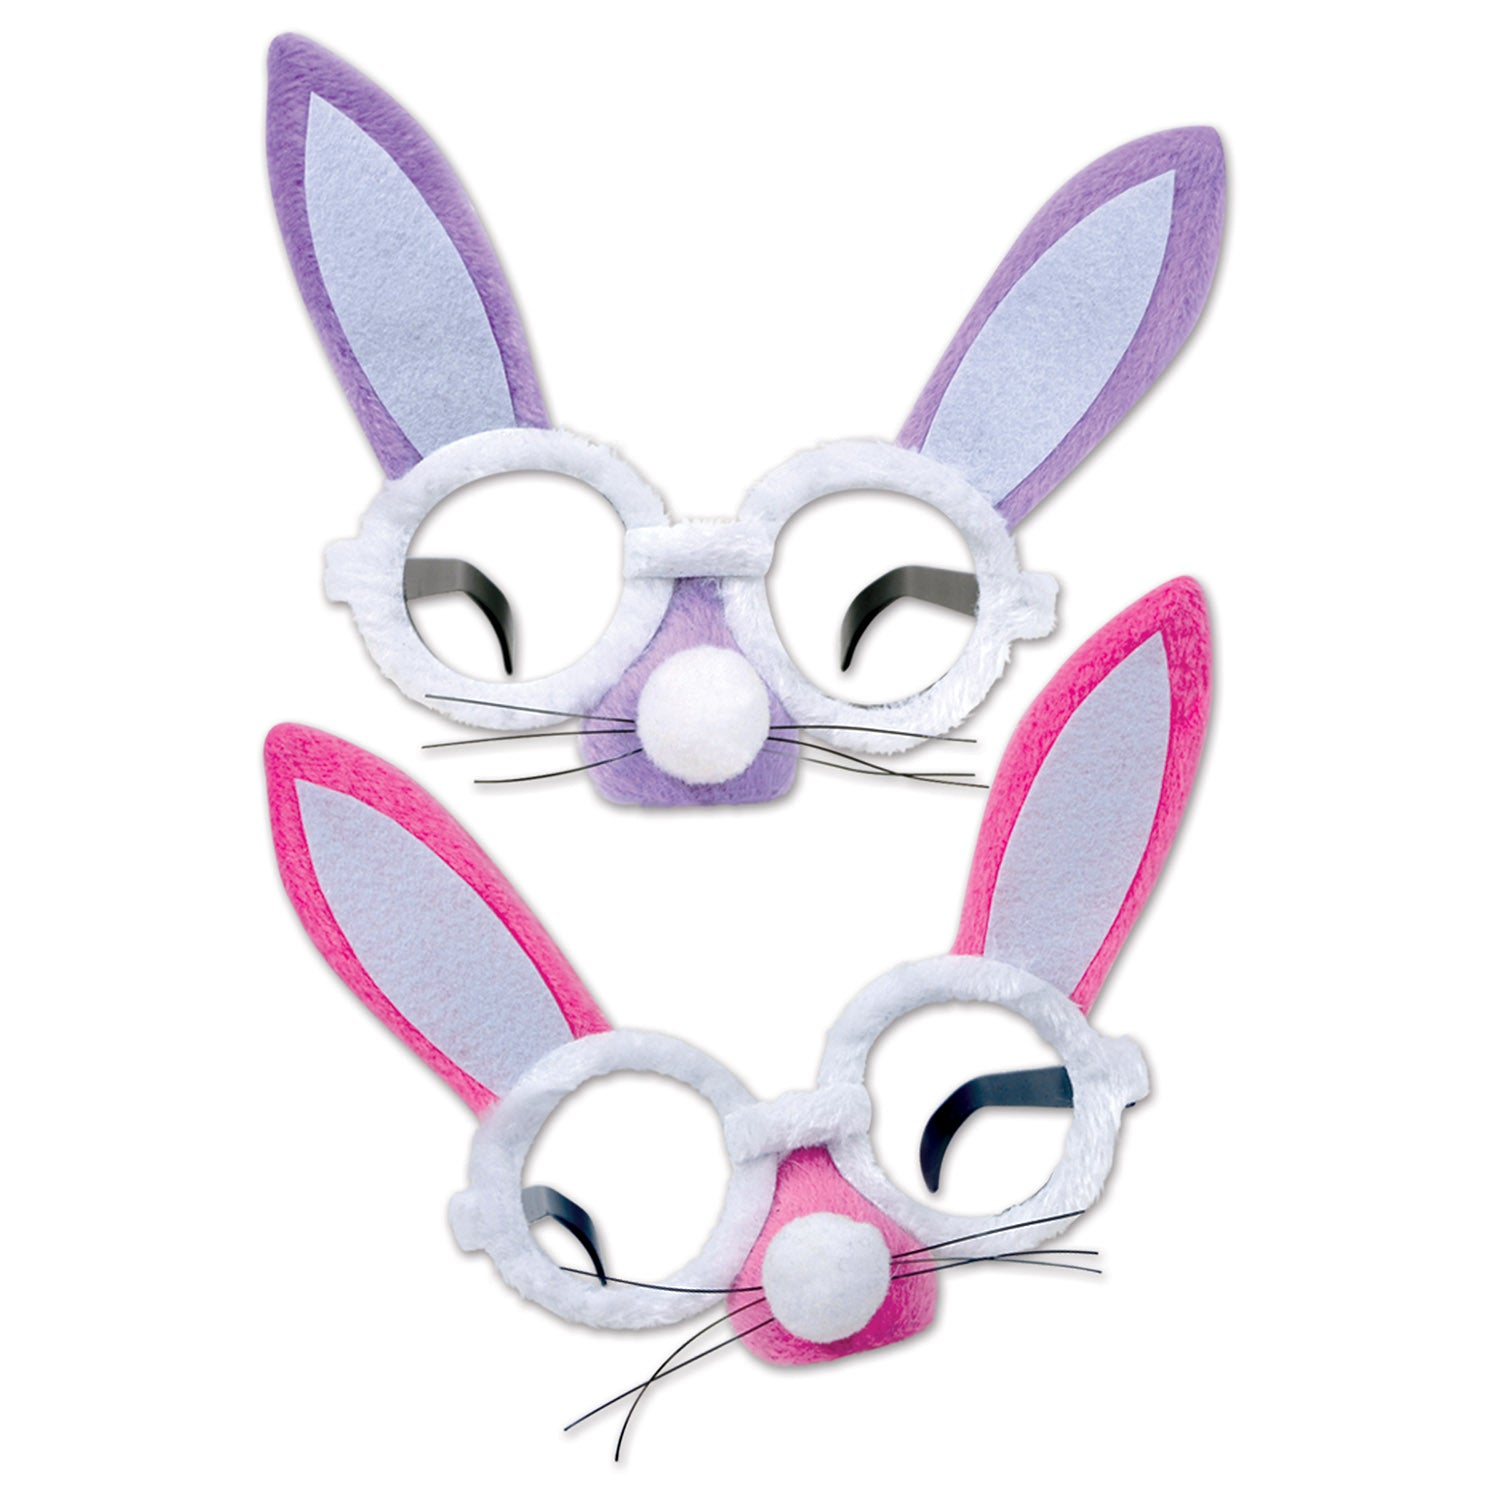 Plush Bunny Glasses by Beistle - Easter Theme Decorations